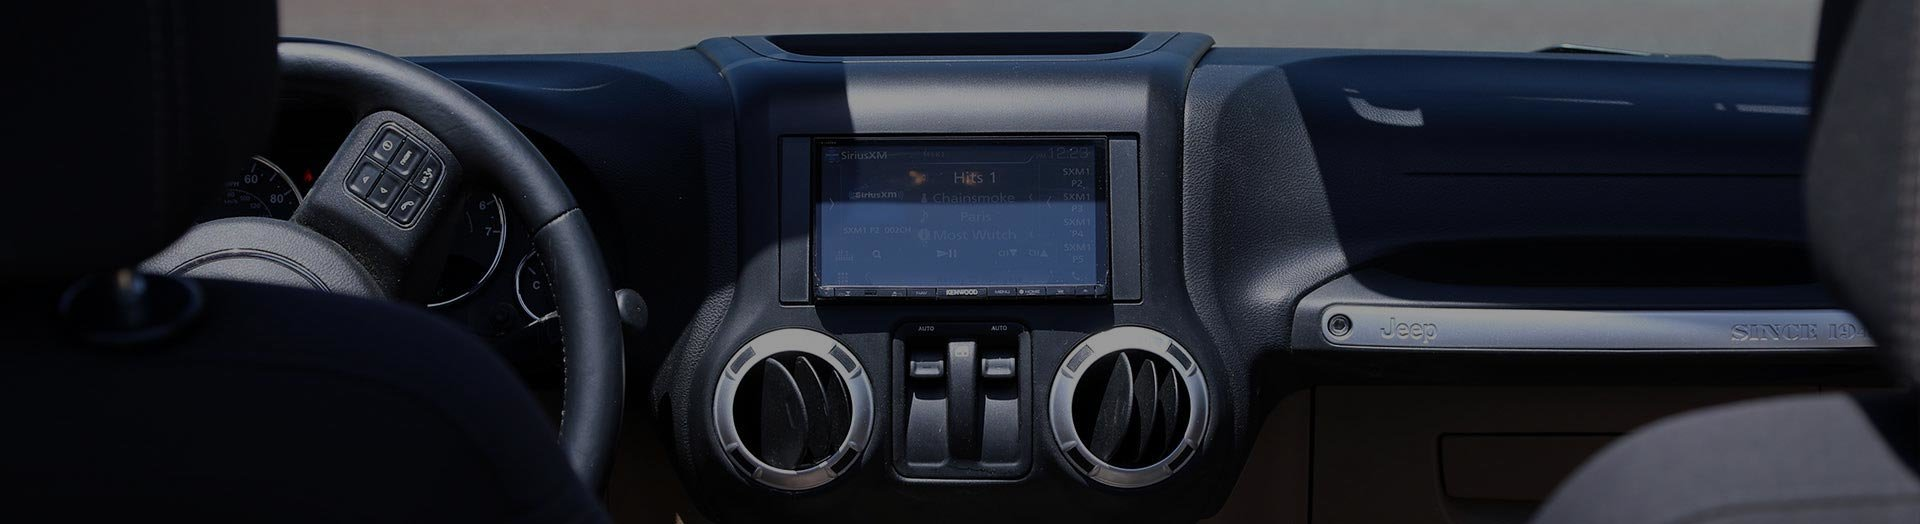 Car Stereo Installation & Design Services | World Wide Stereo